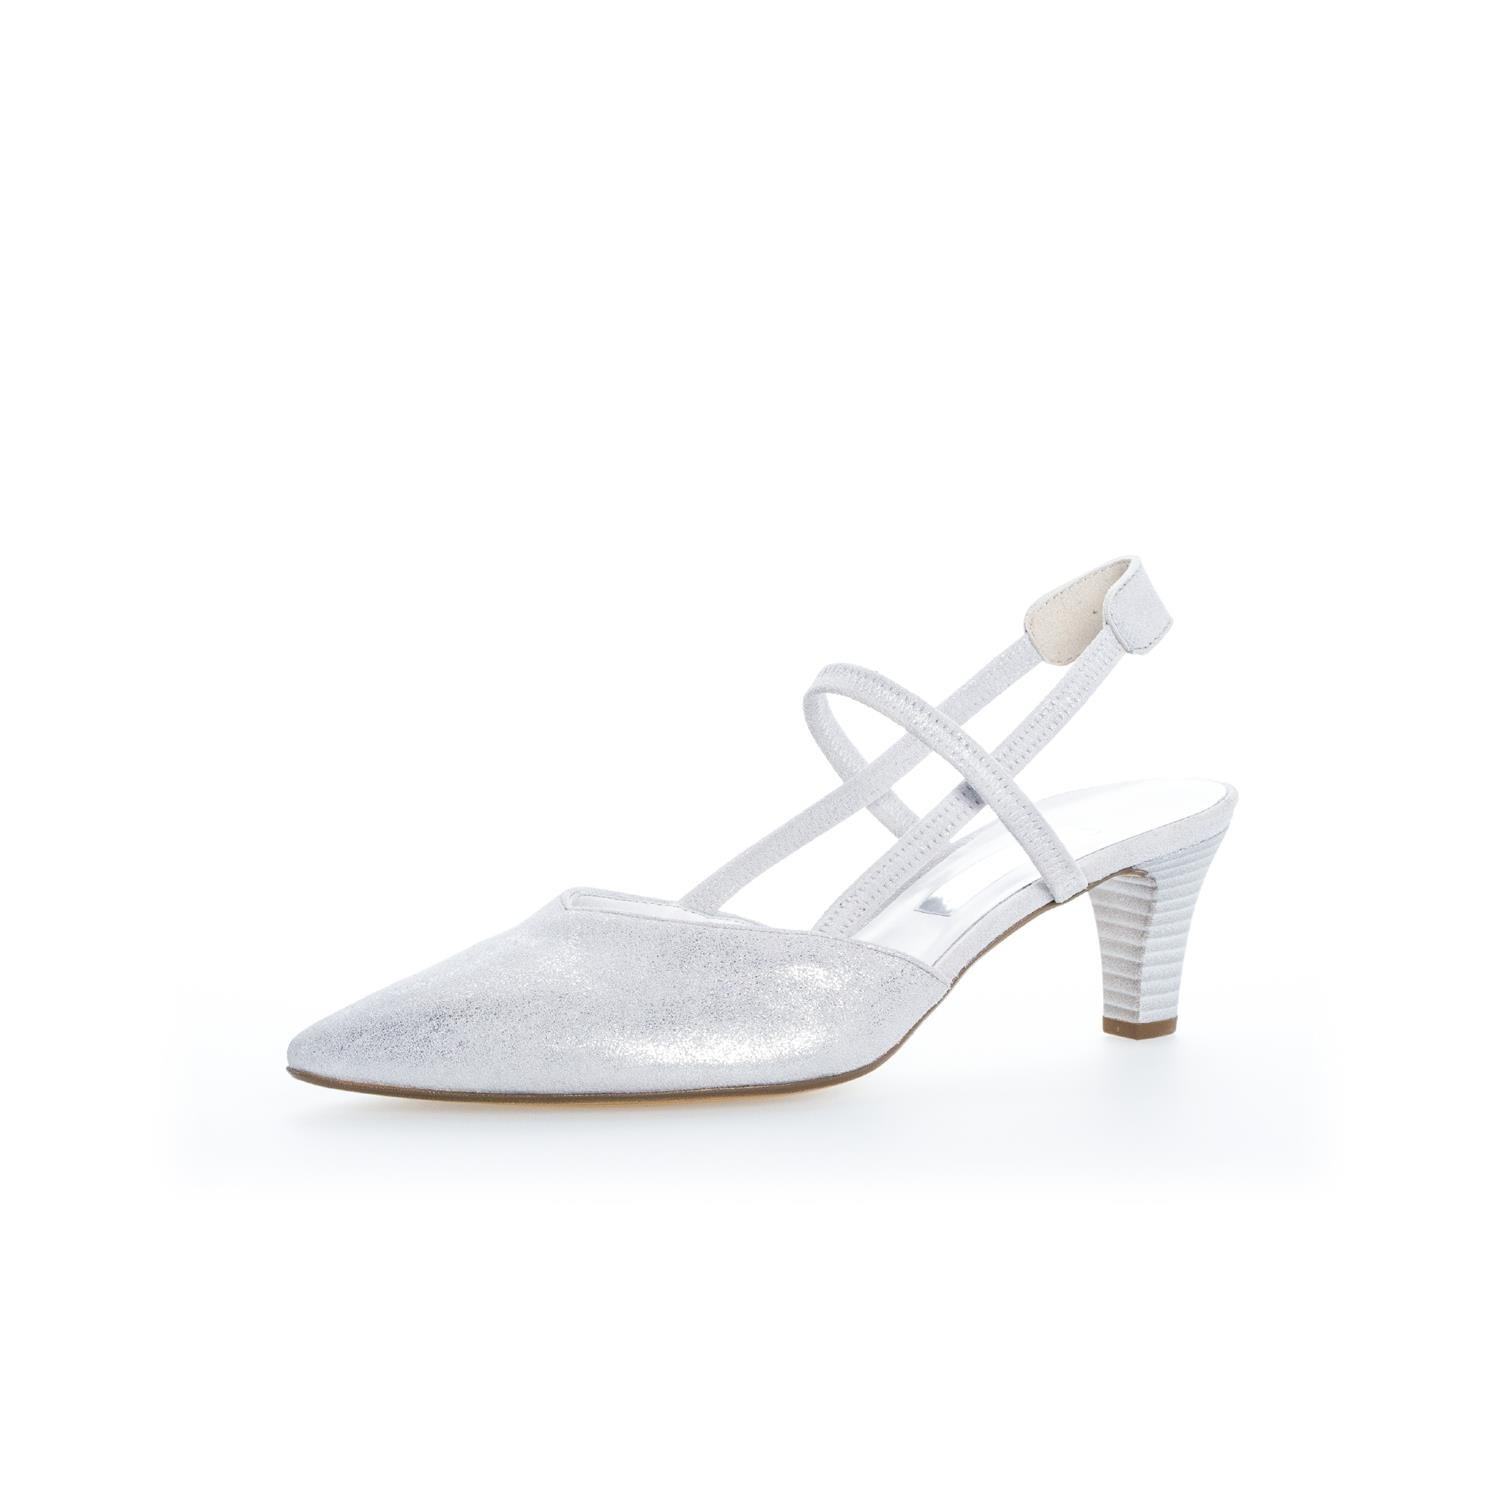 Ice (+Absatz) Gabor Damen Pumps 81.554.61 grau 256110